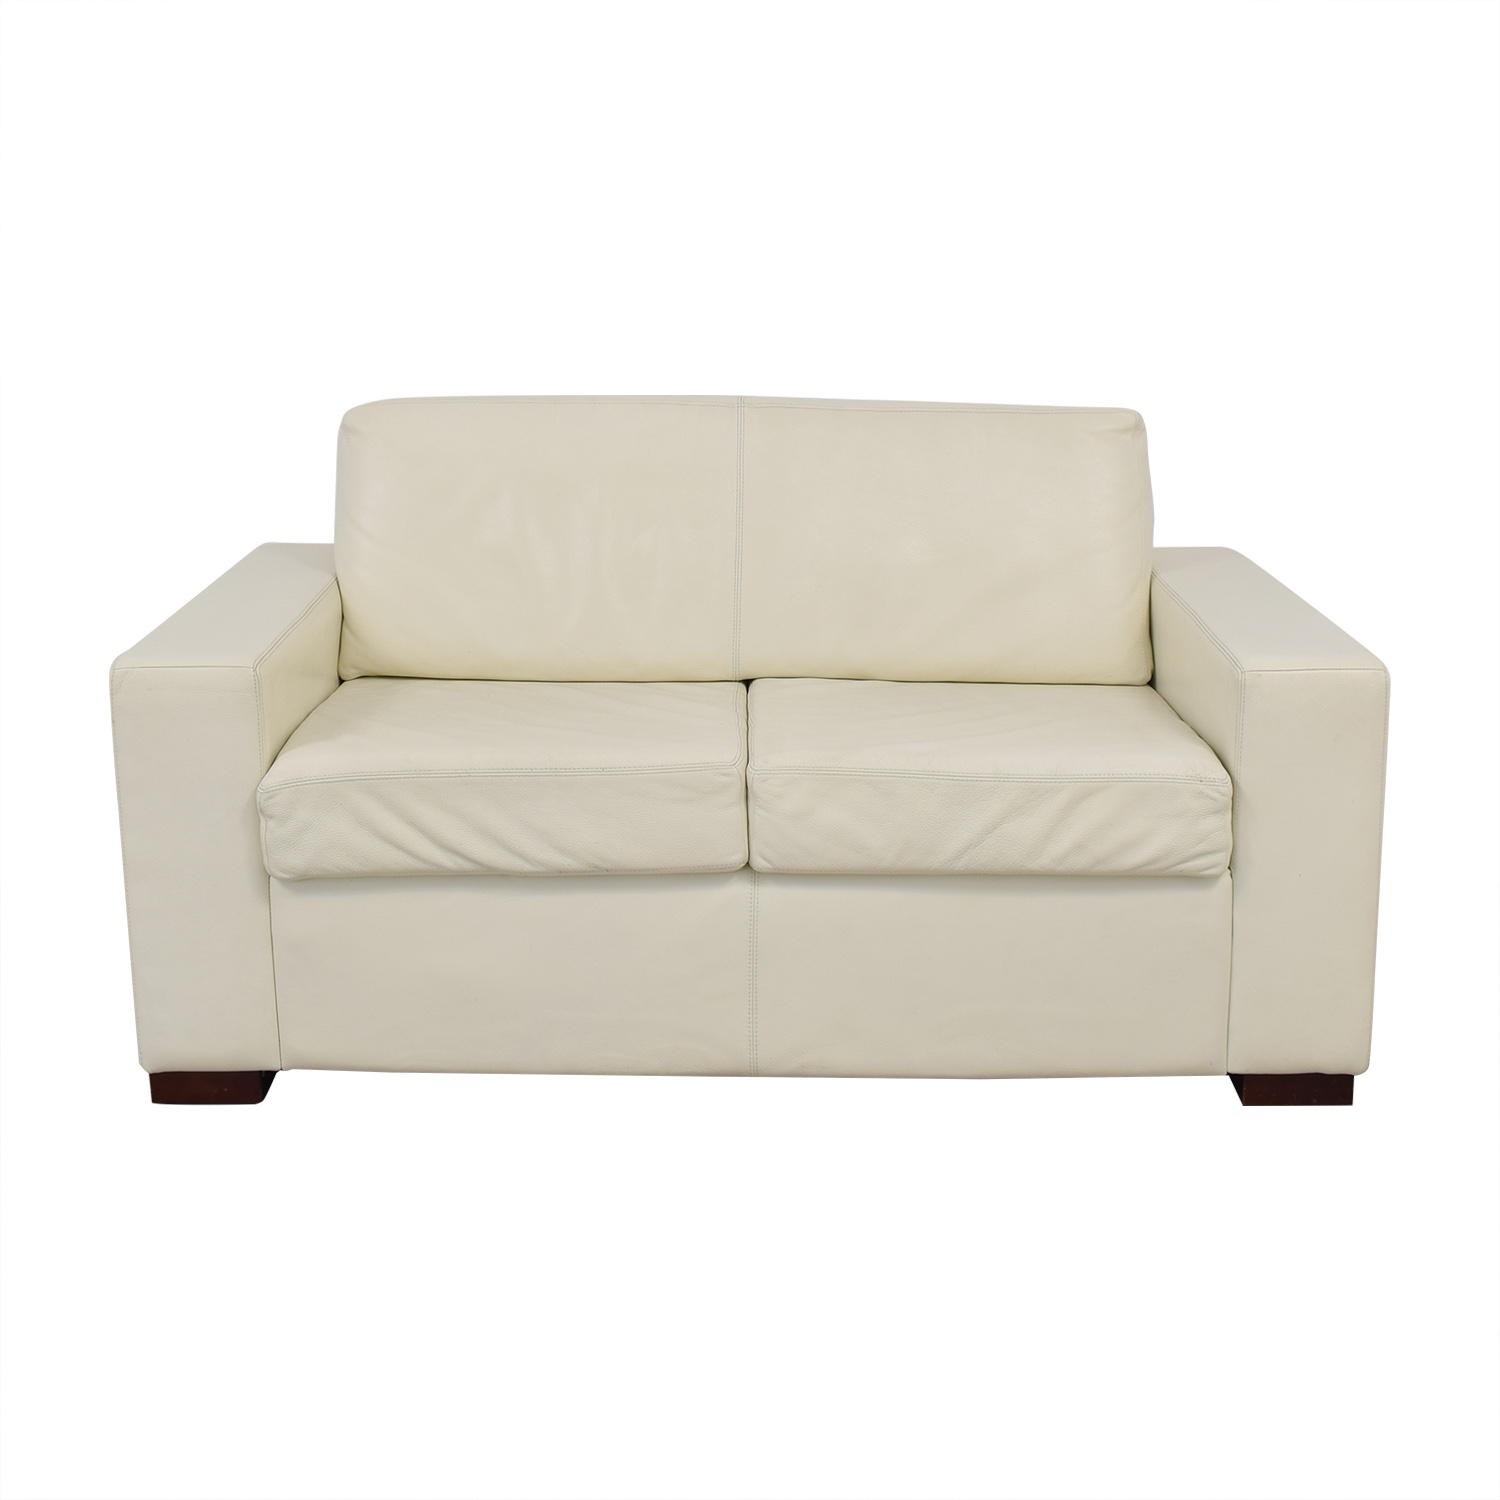 shop  New York Modern Love Seat online